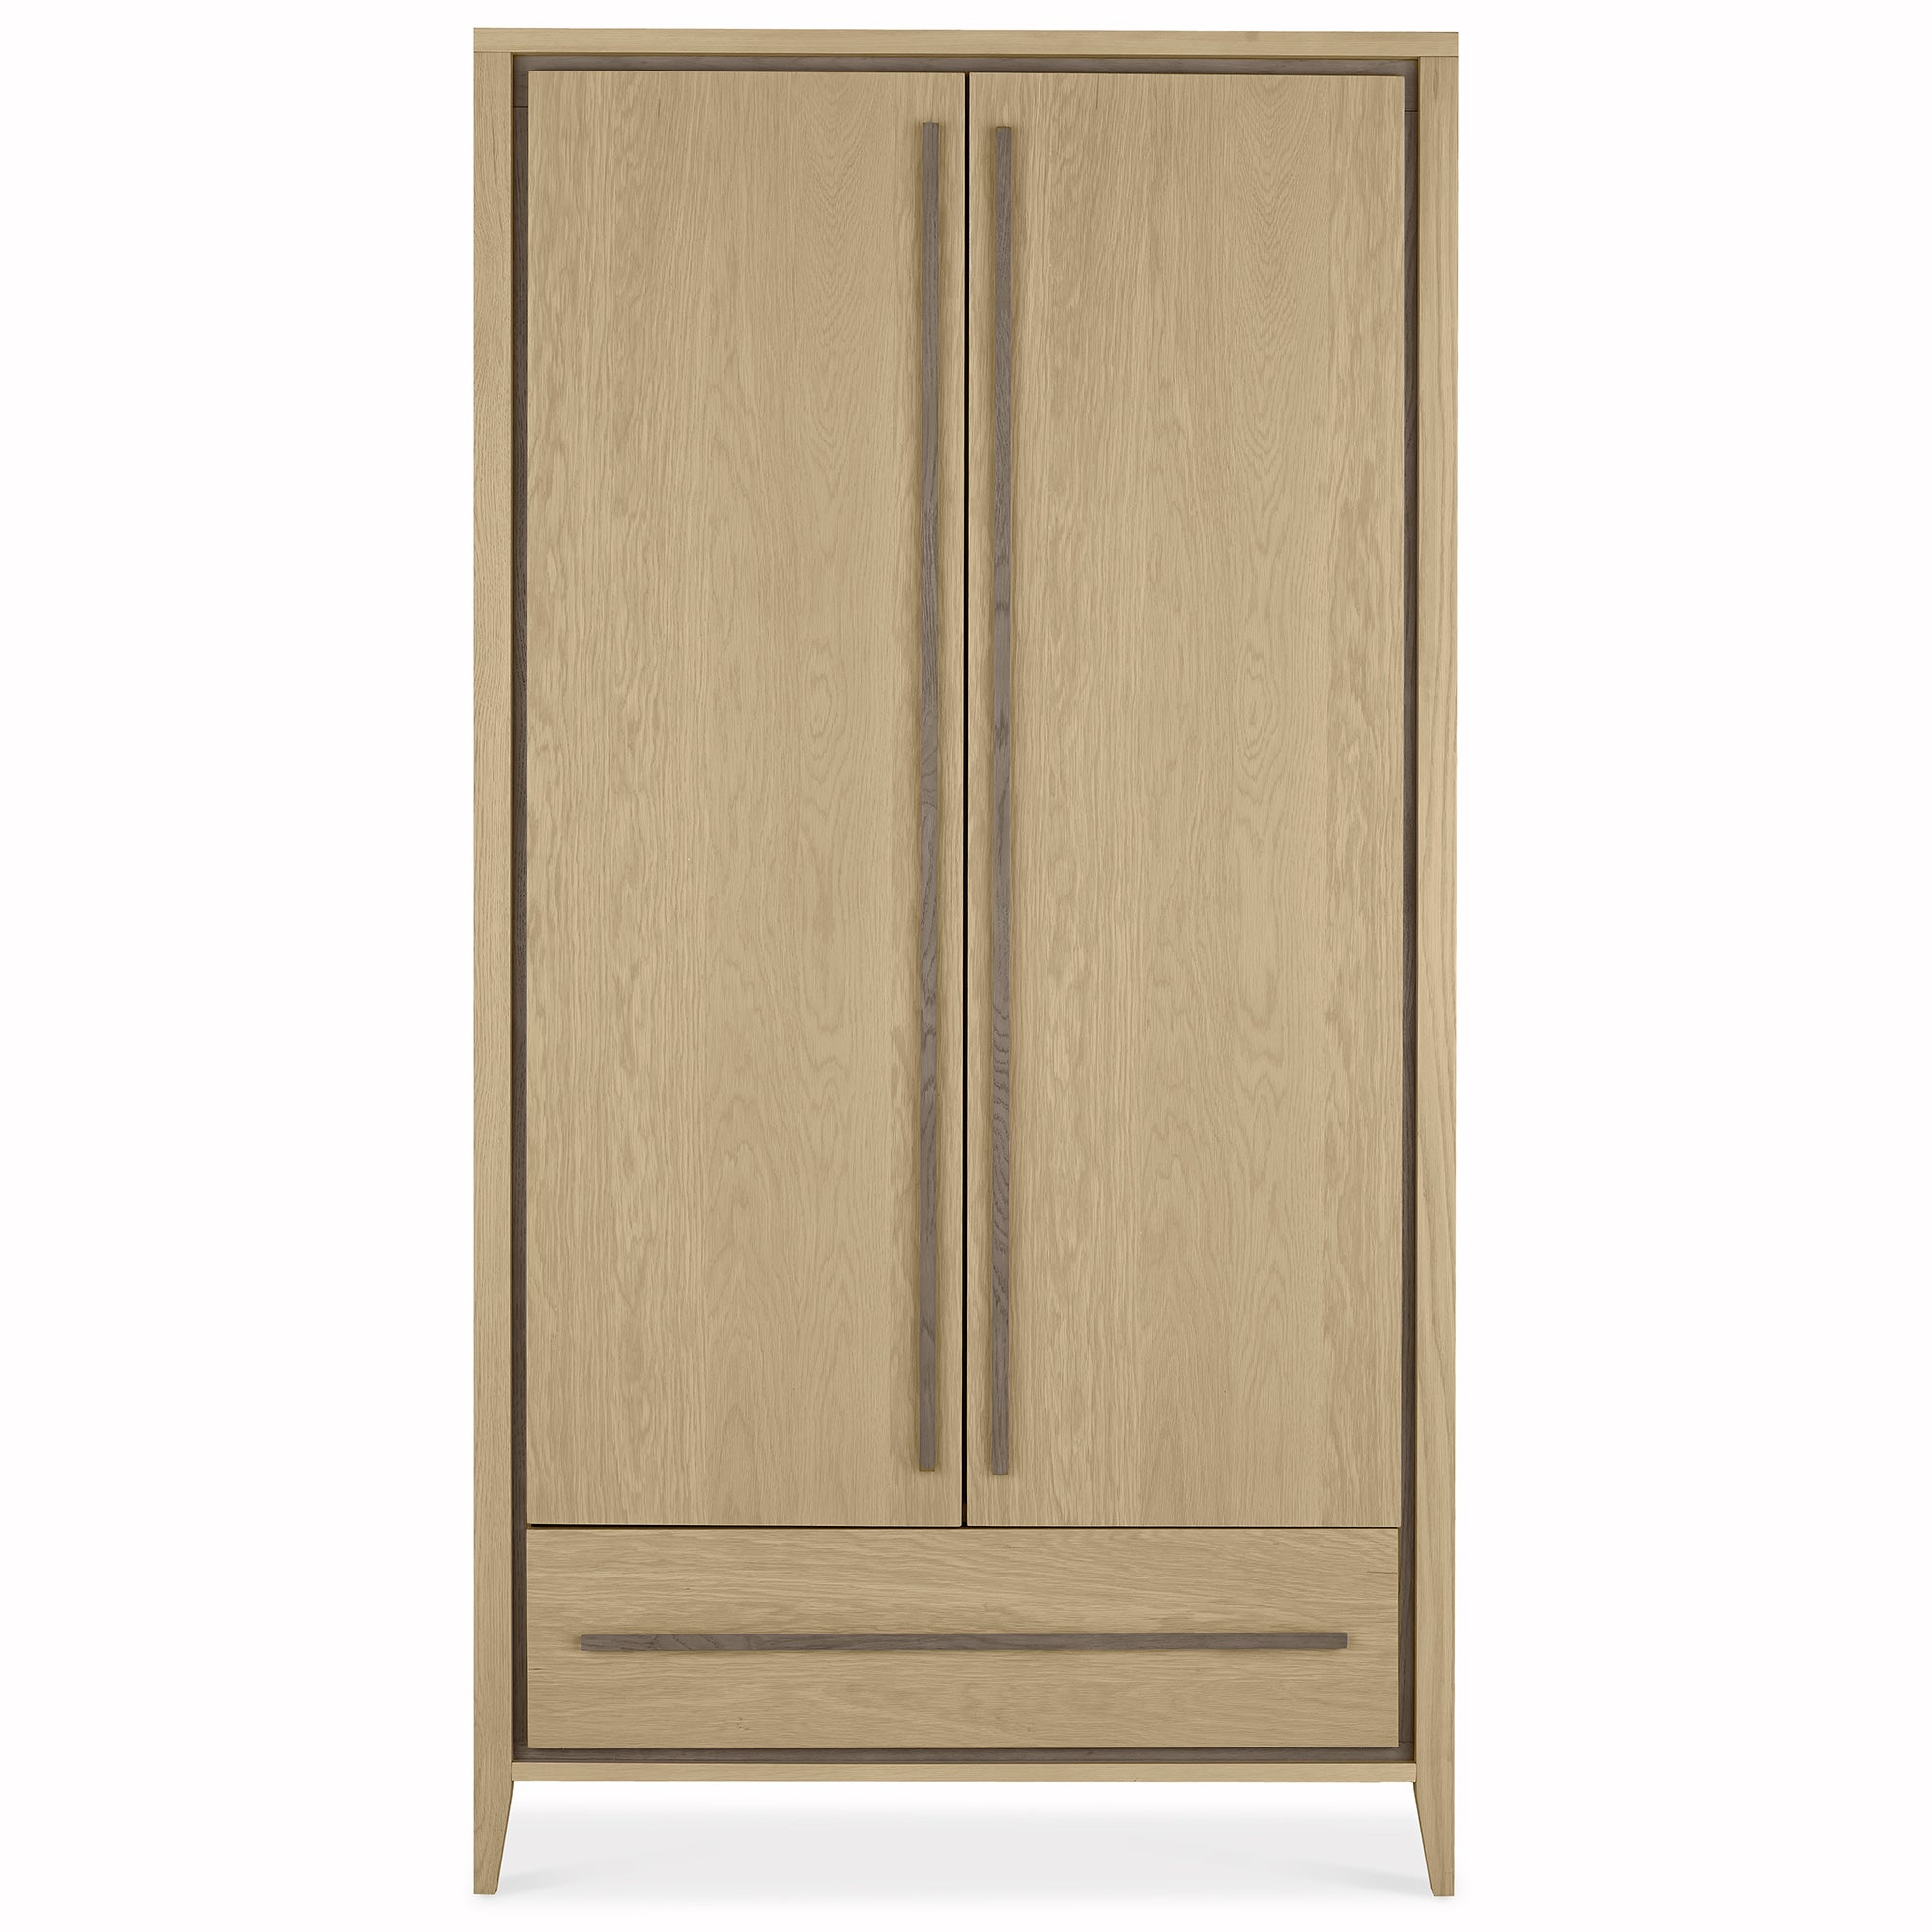 Photo of Mason oak double wardrobe oak -brown-